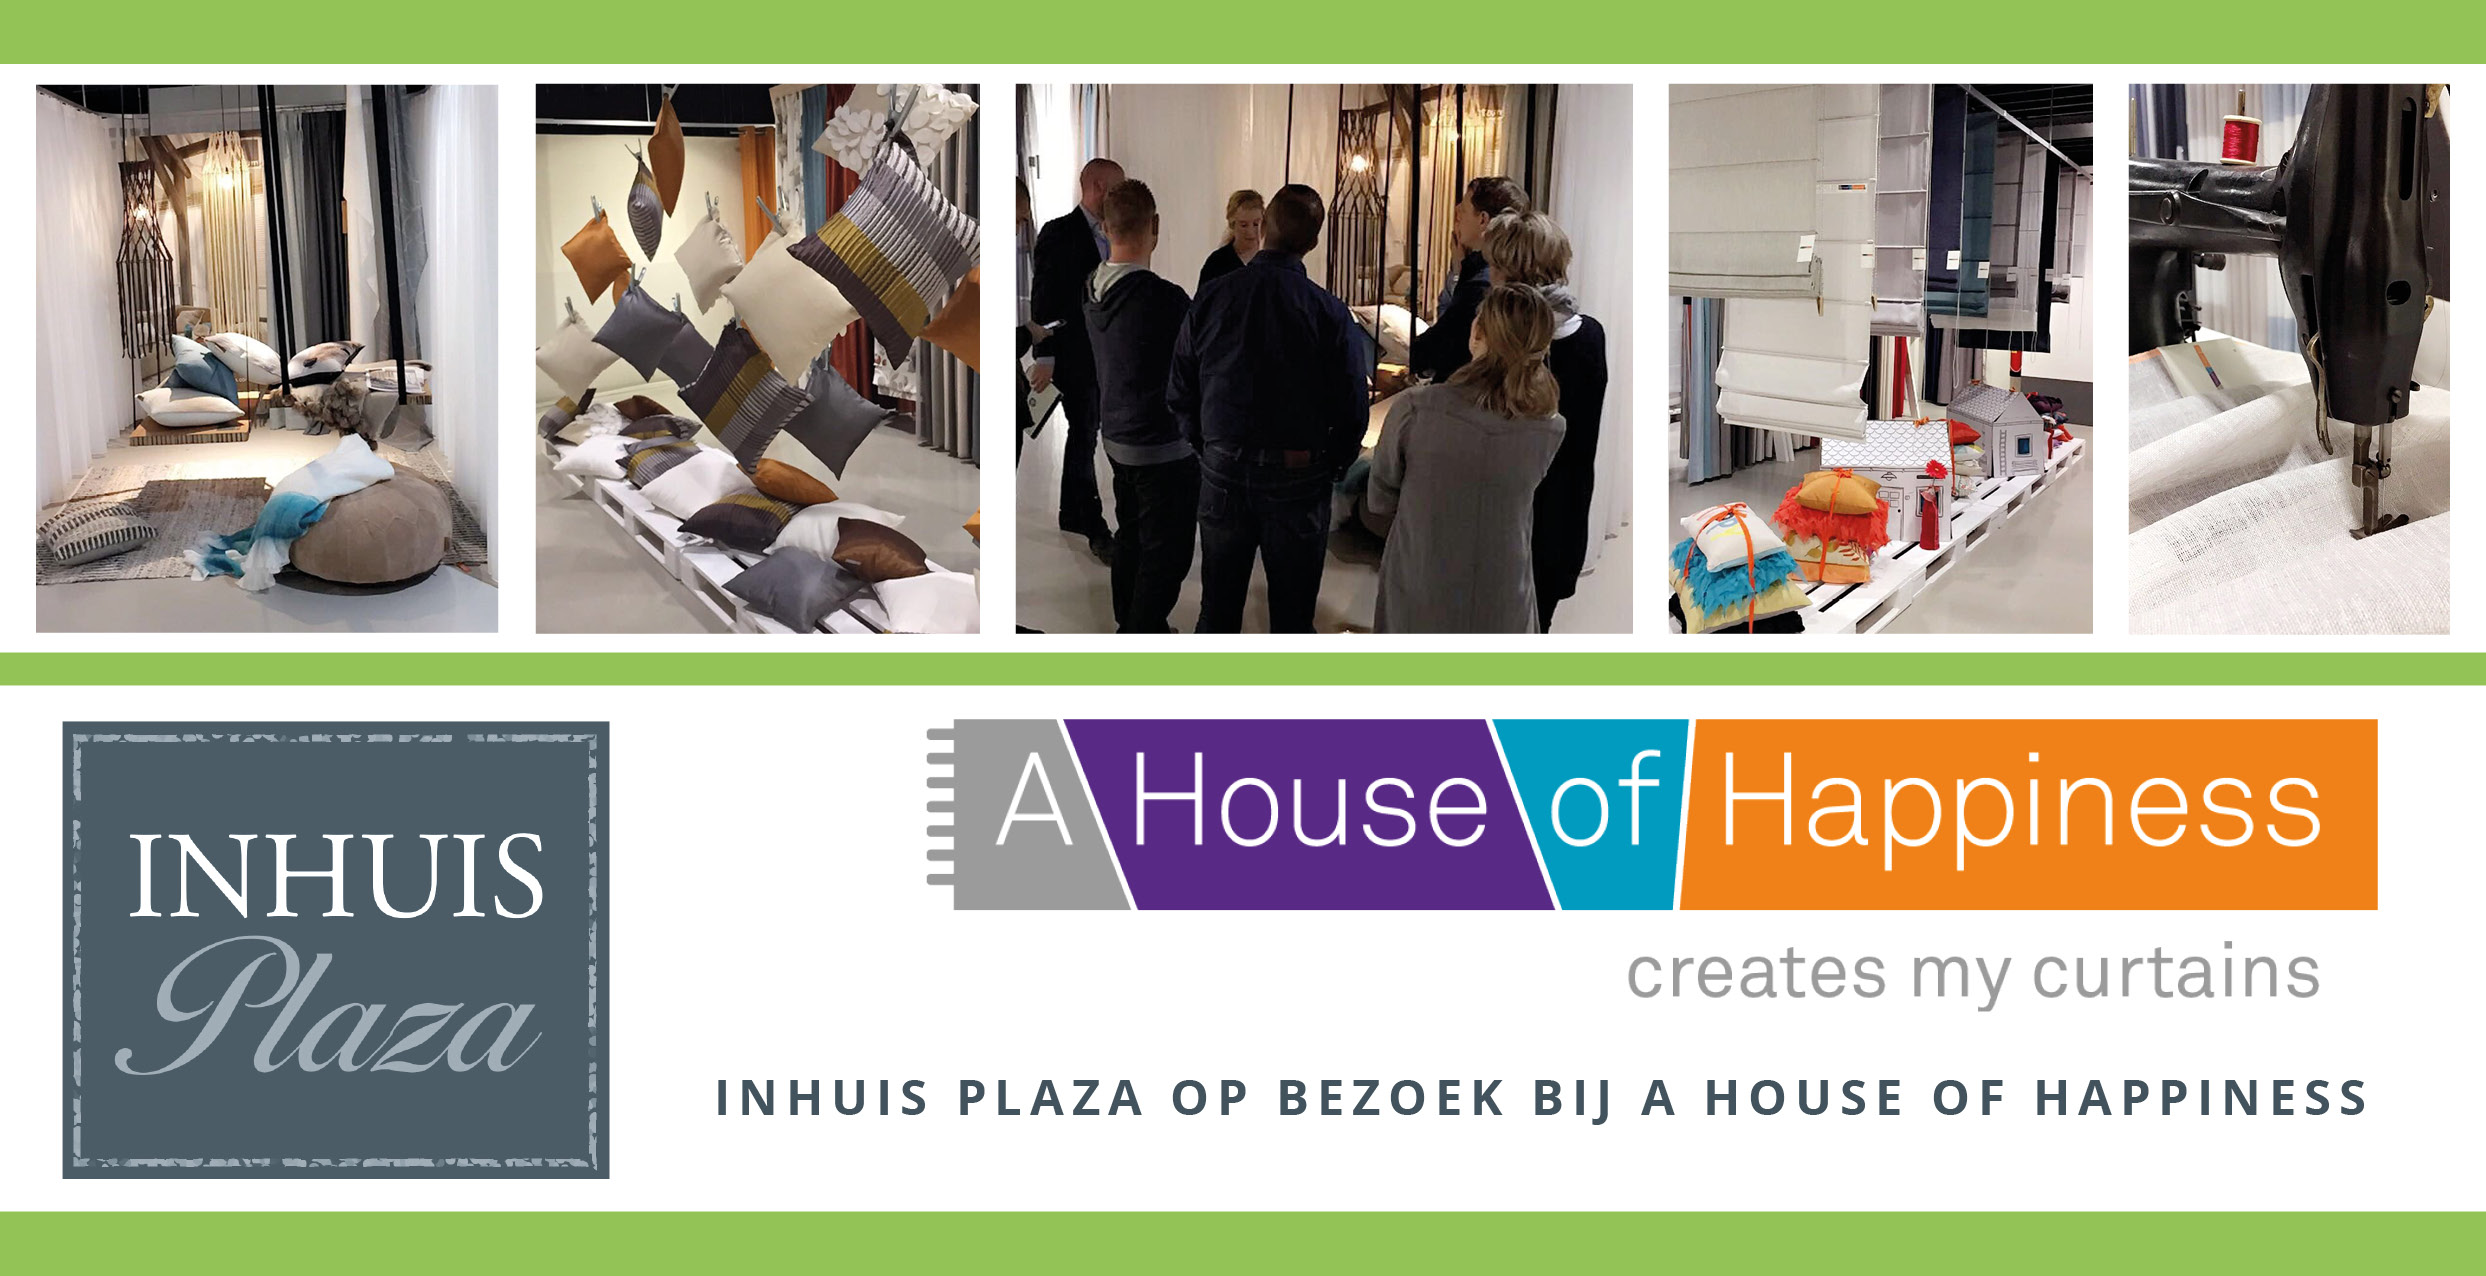 A House of Happiness | INHUIS Plaza